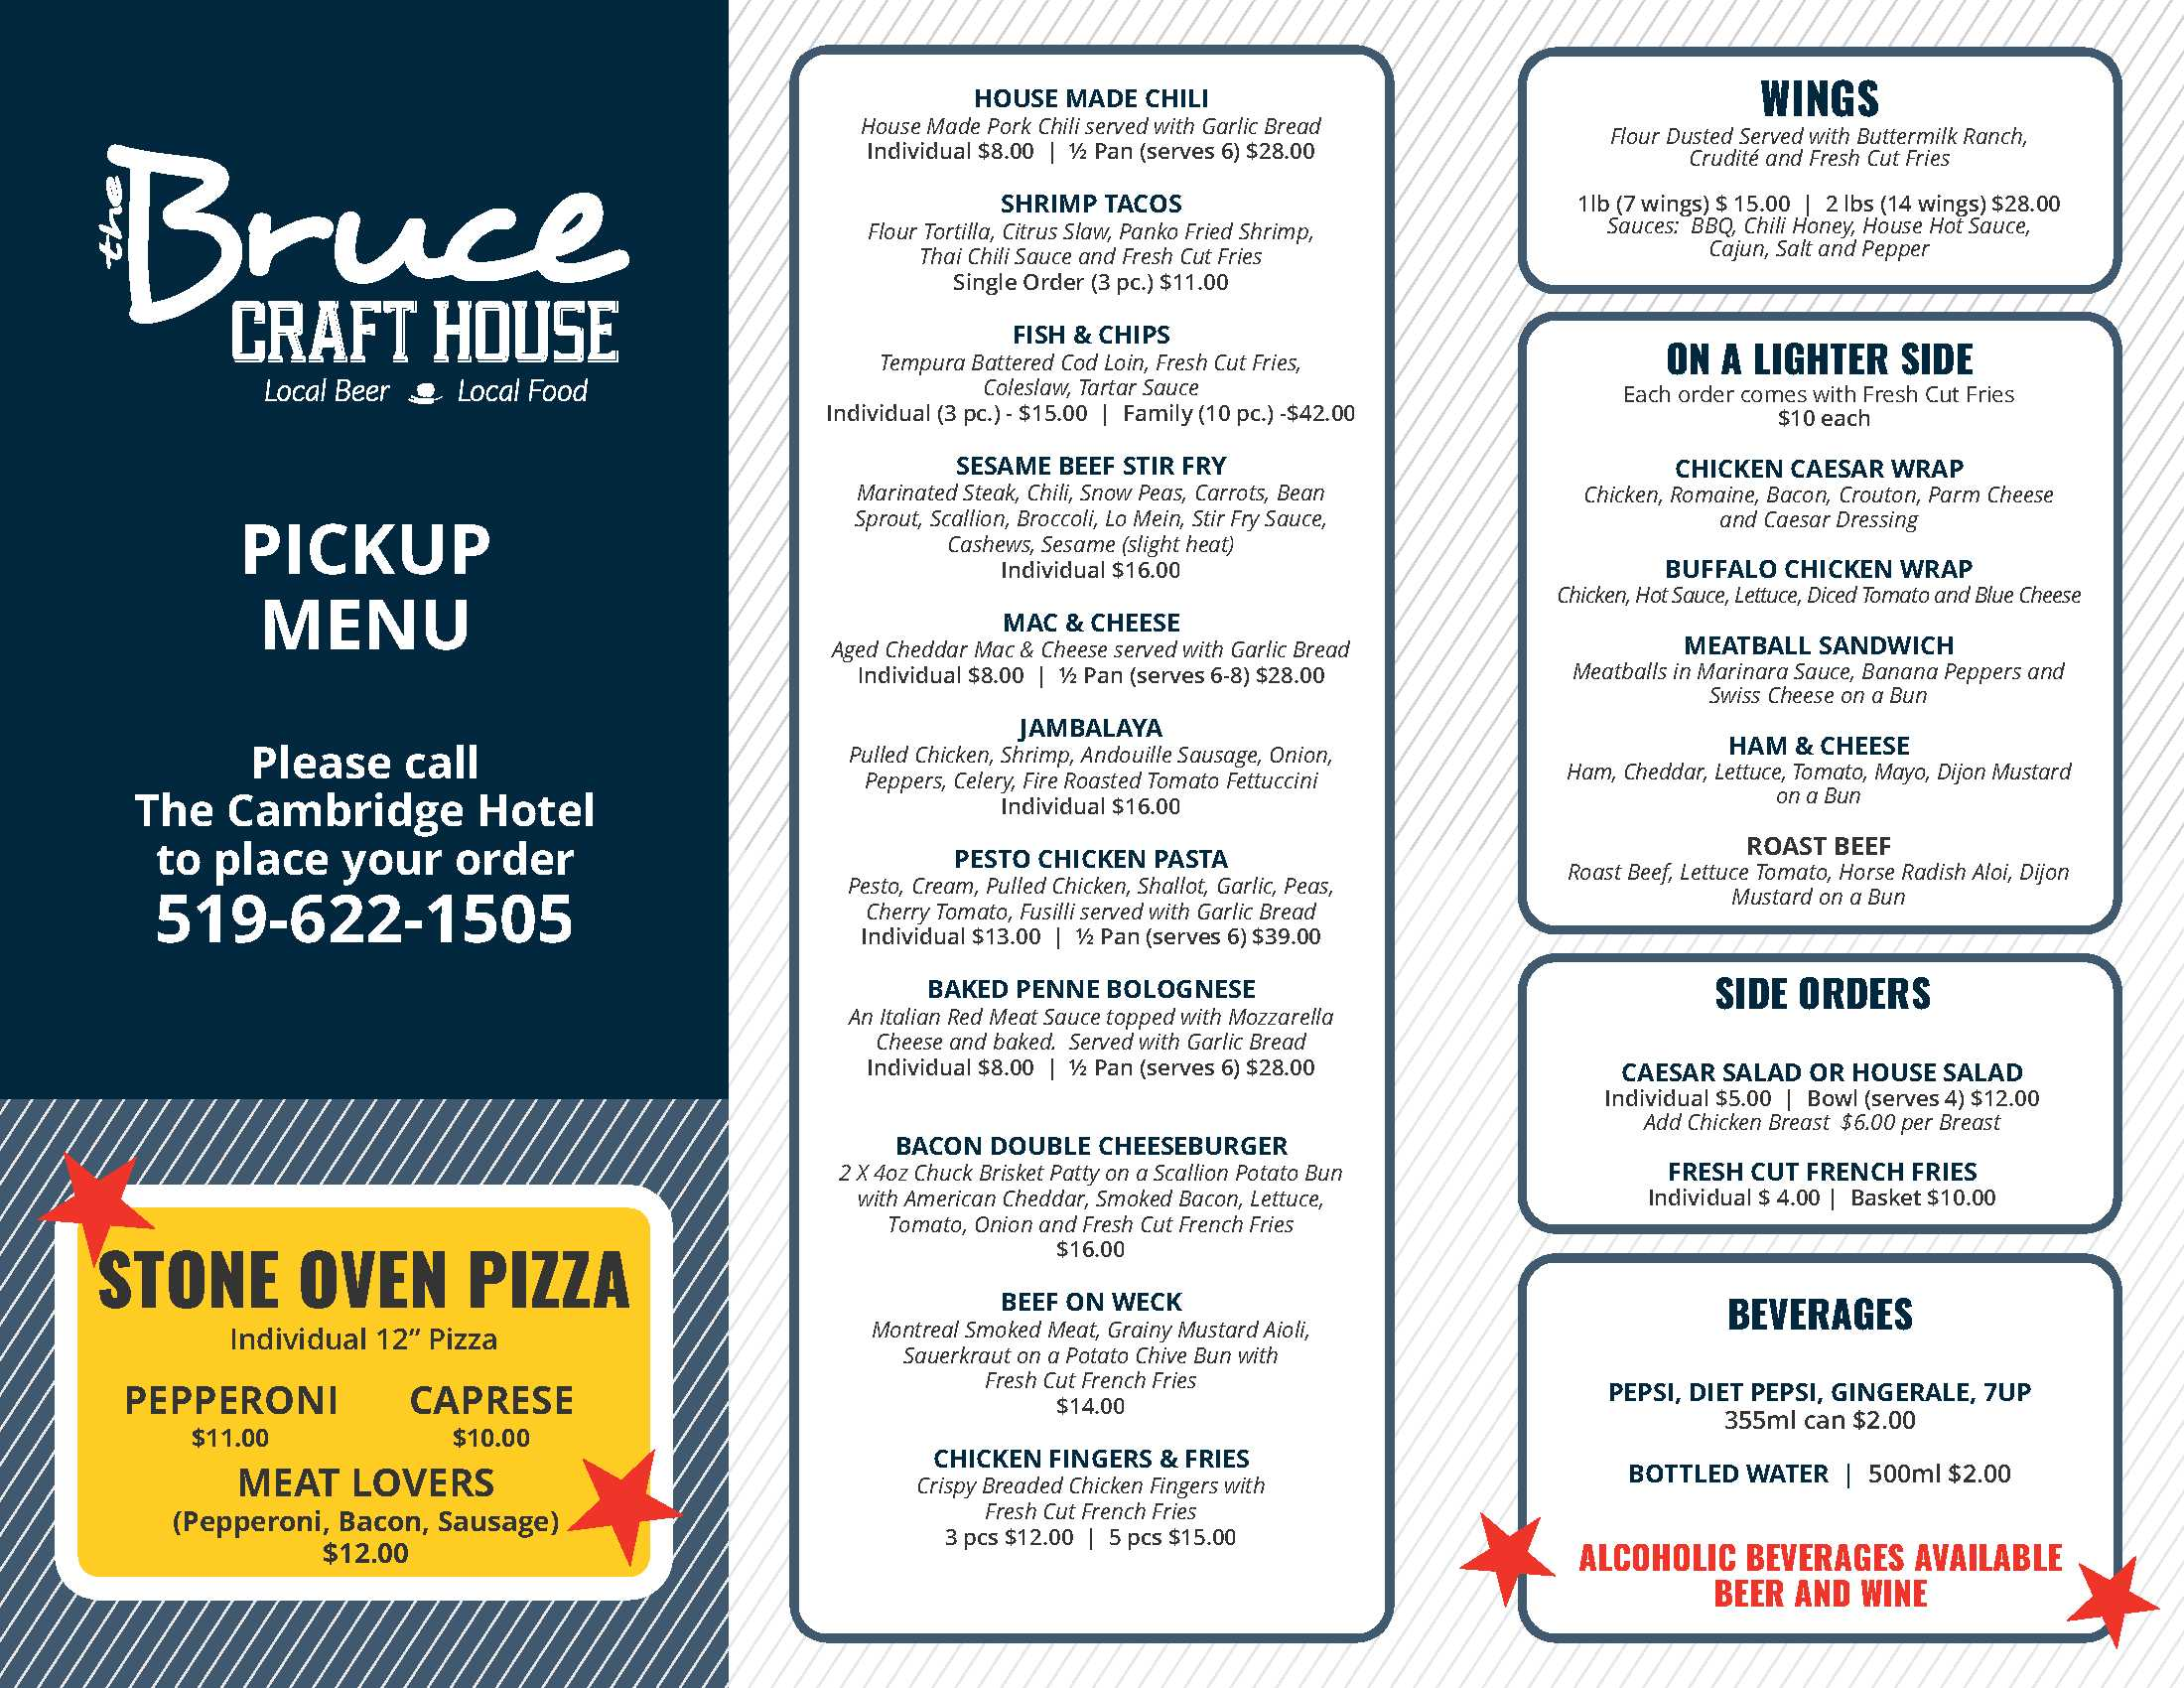 Bruce Craft House (Pick Up Menu)